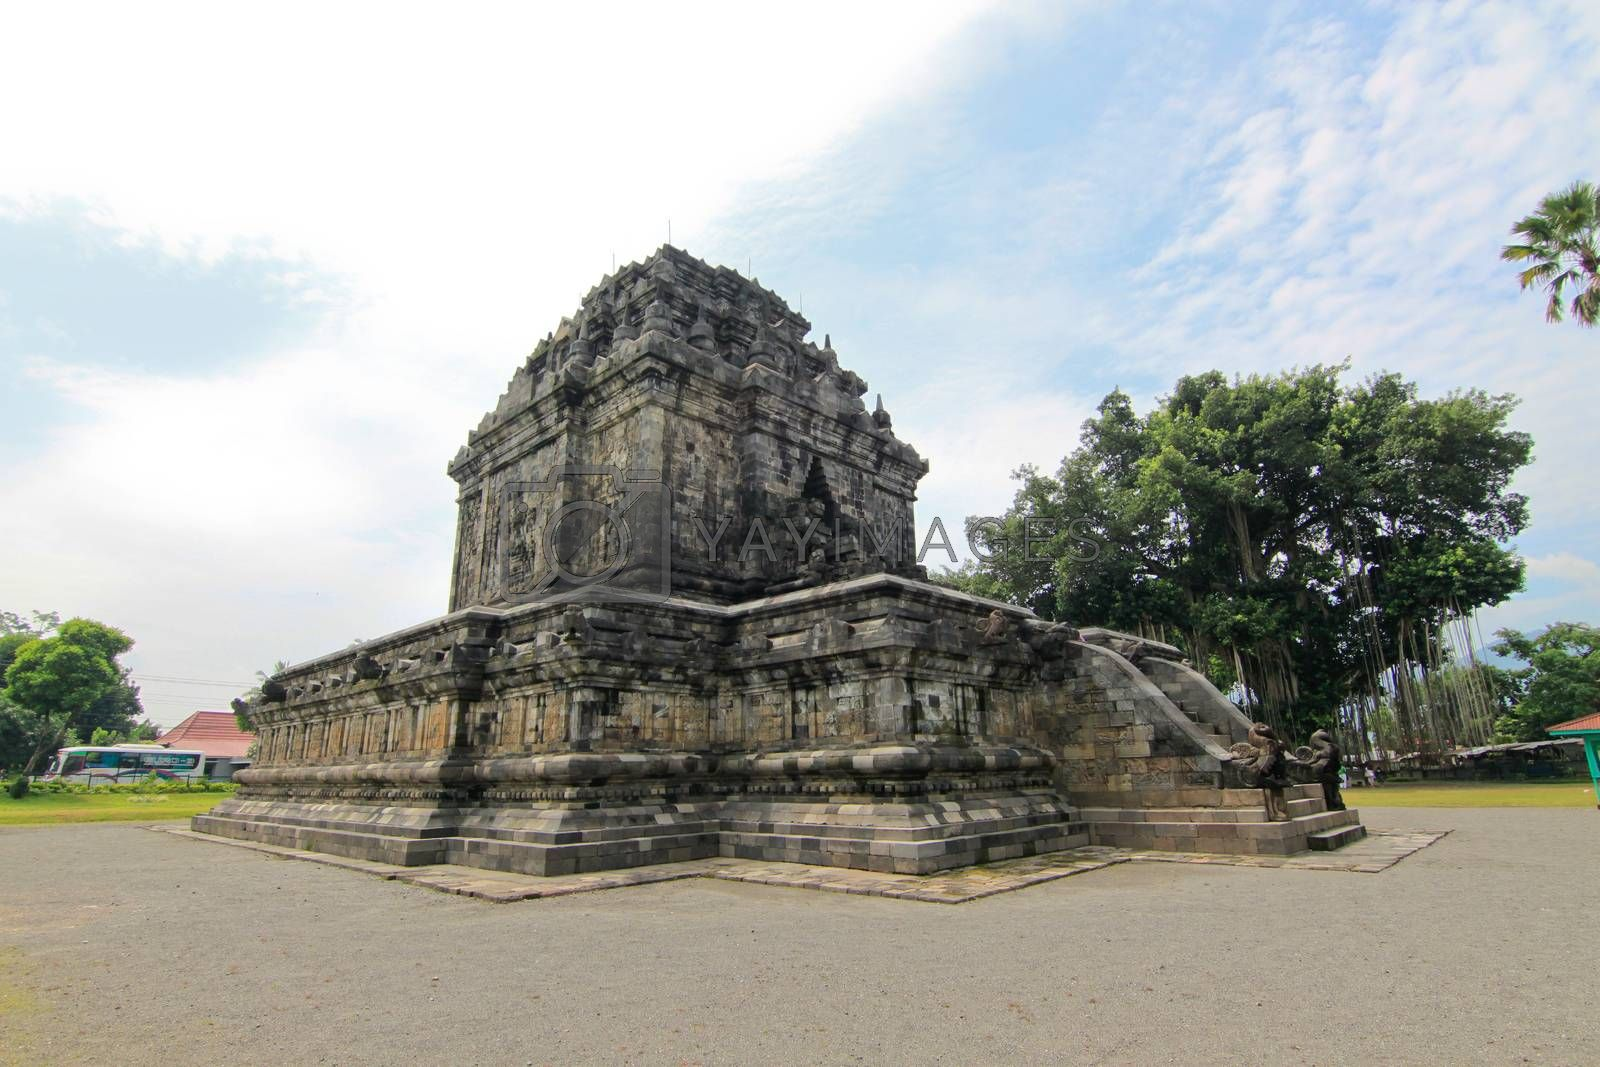 Royalty free image of mendut temple by sorayuth26